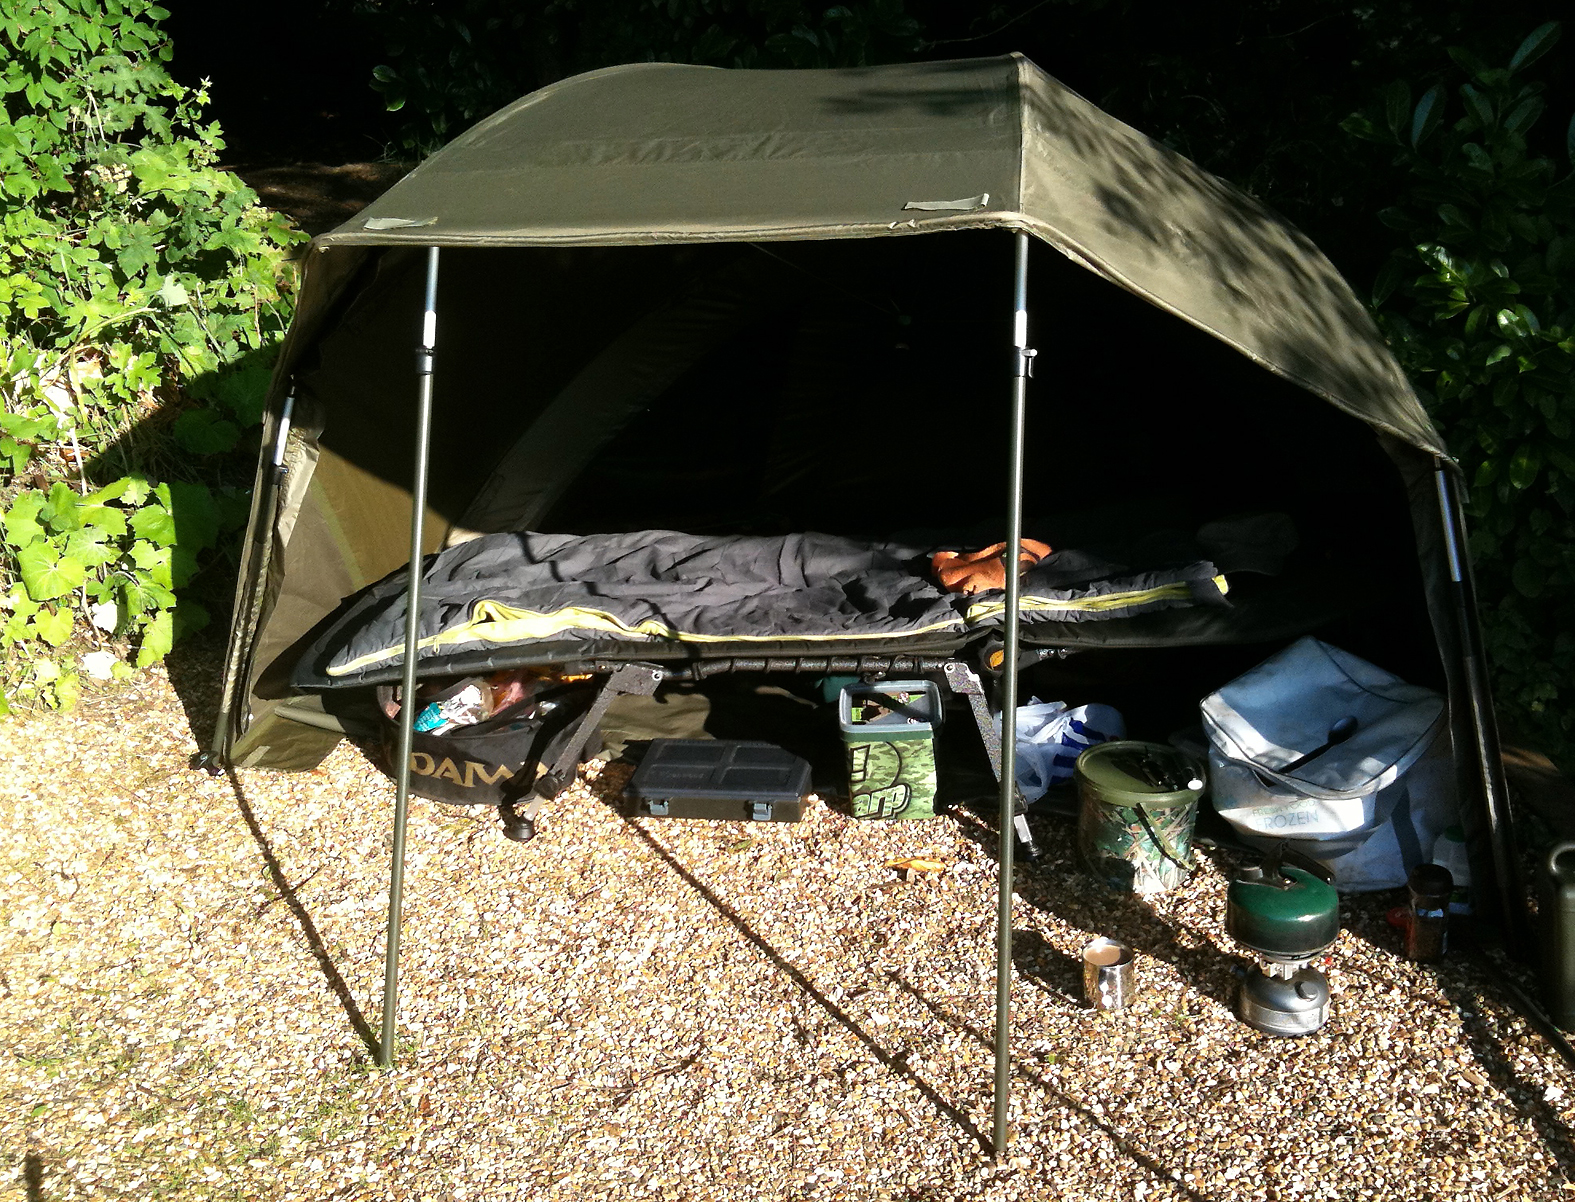 With all four storm poles attached (all supplied) the brolly's extremely stable